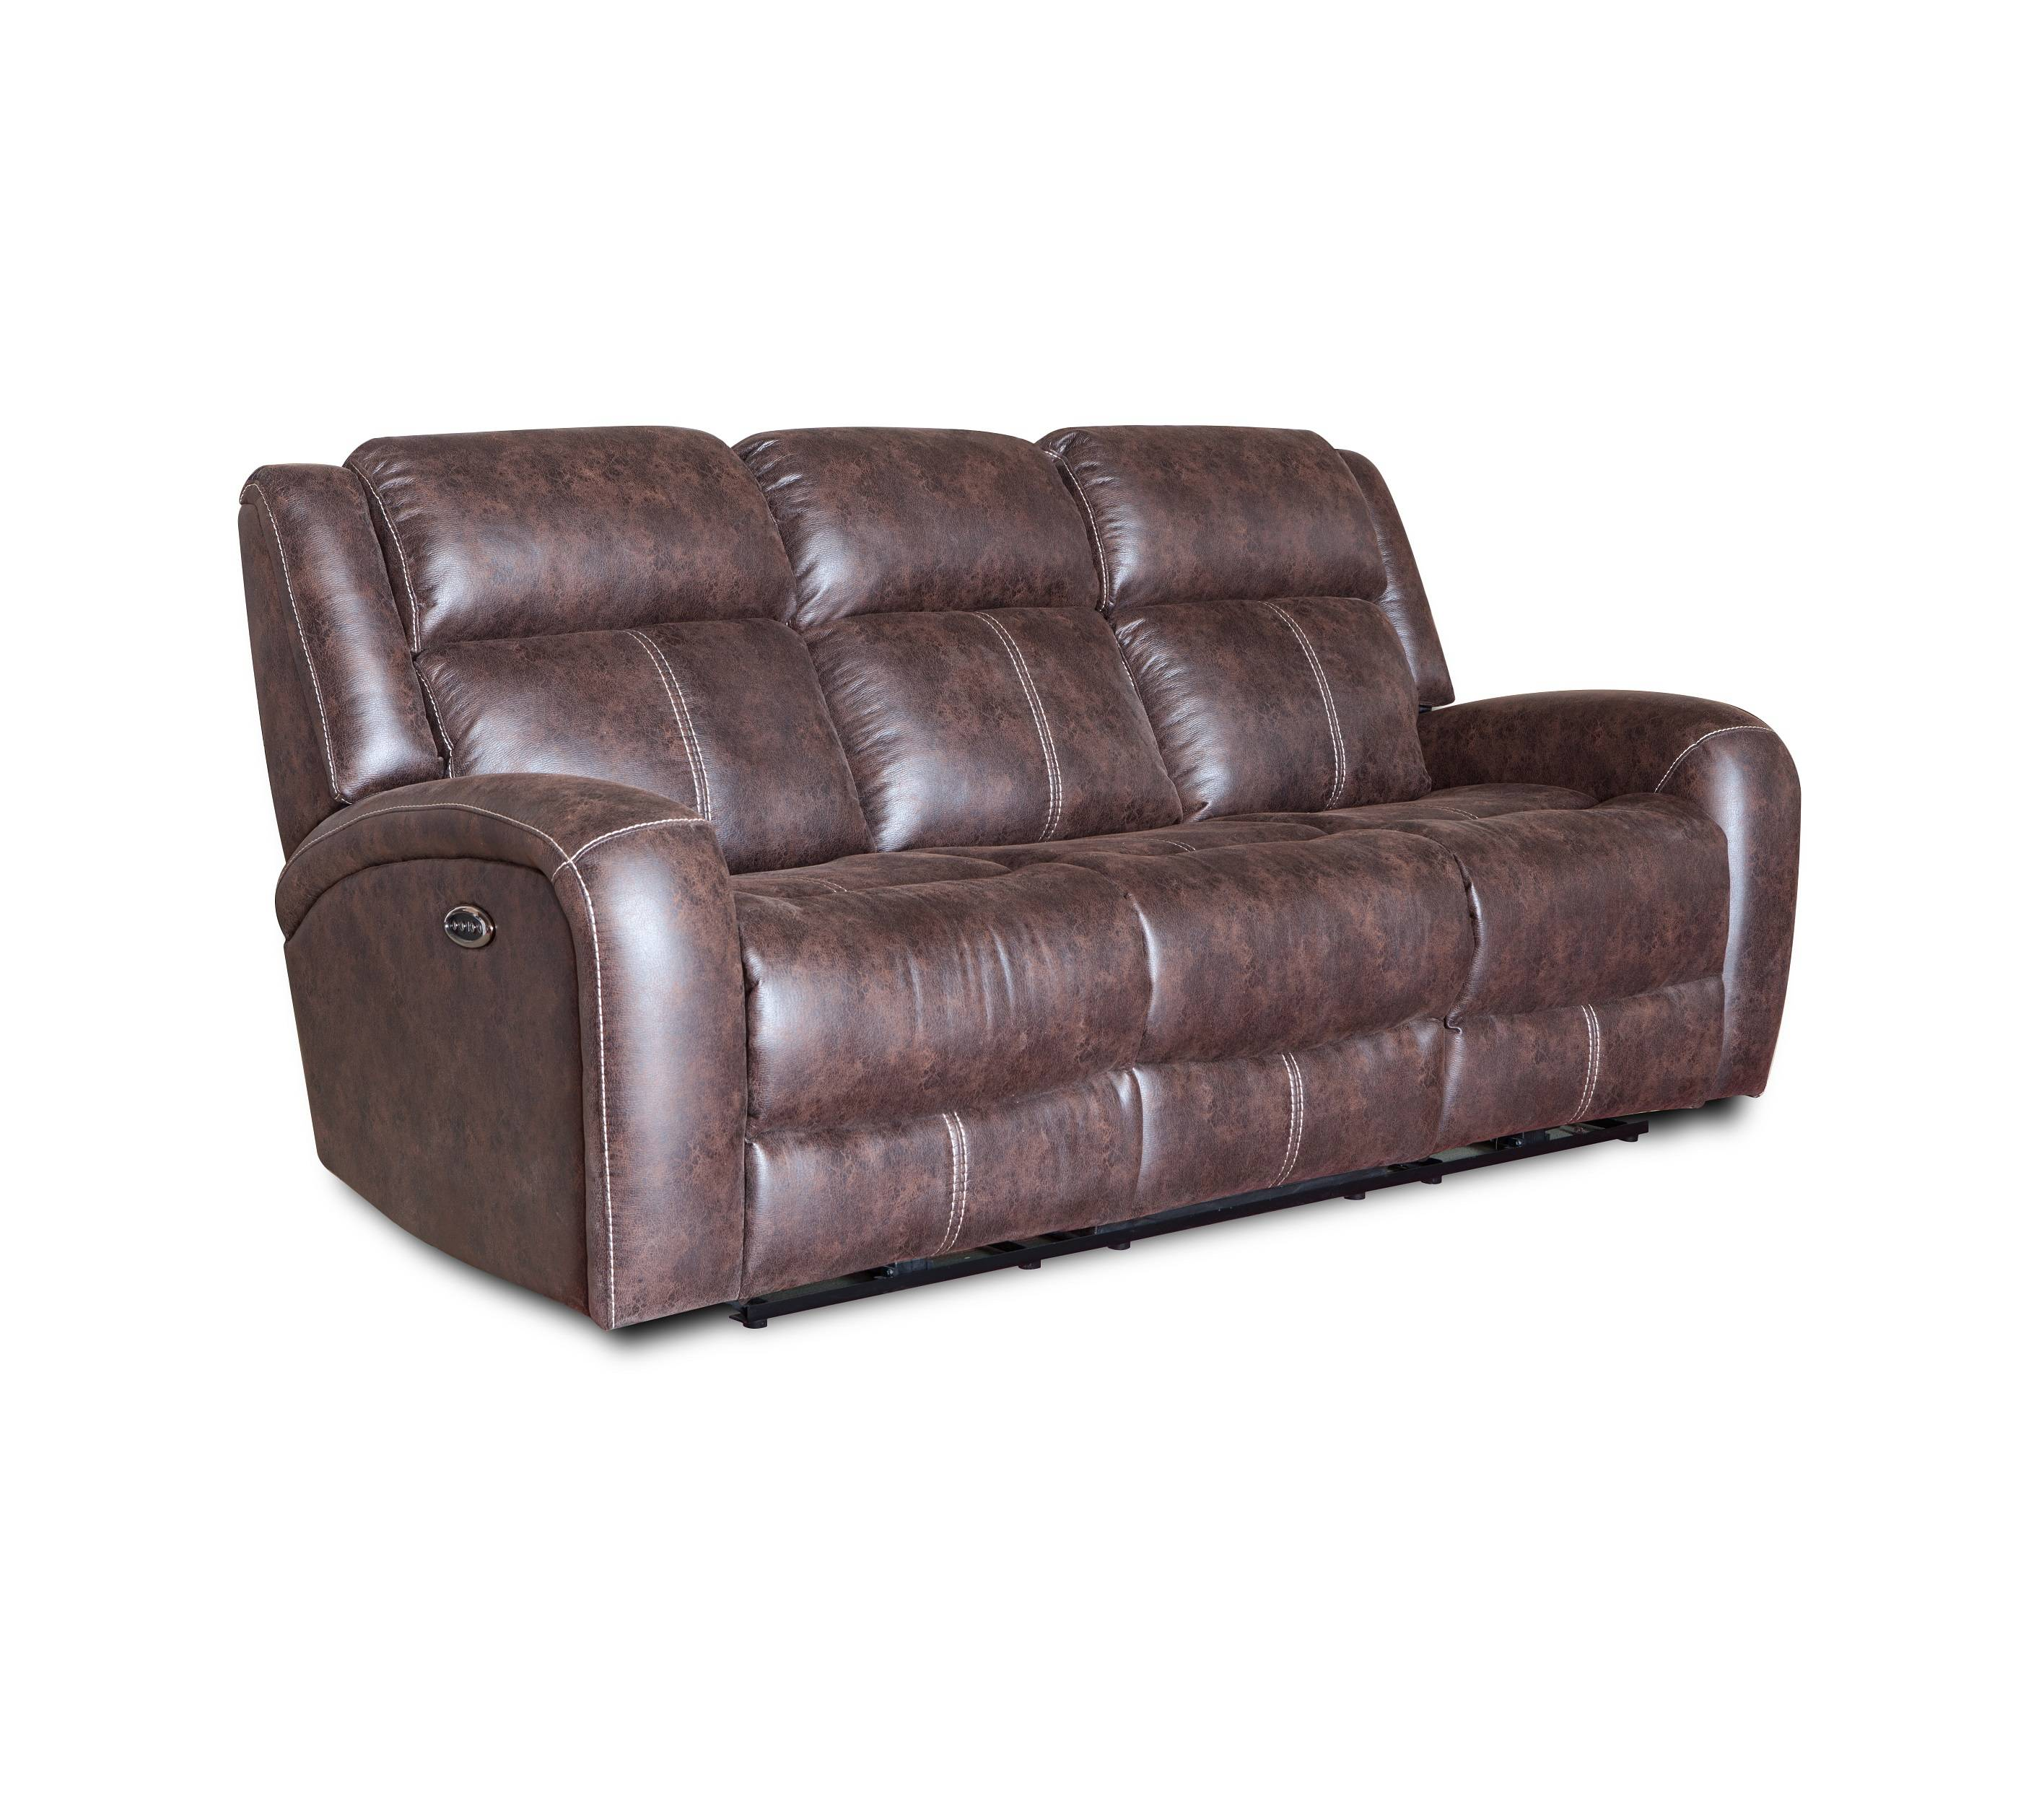 Hot selling massage functional real leather recliner sofa